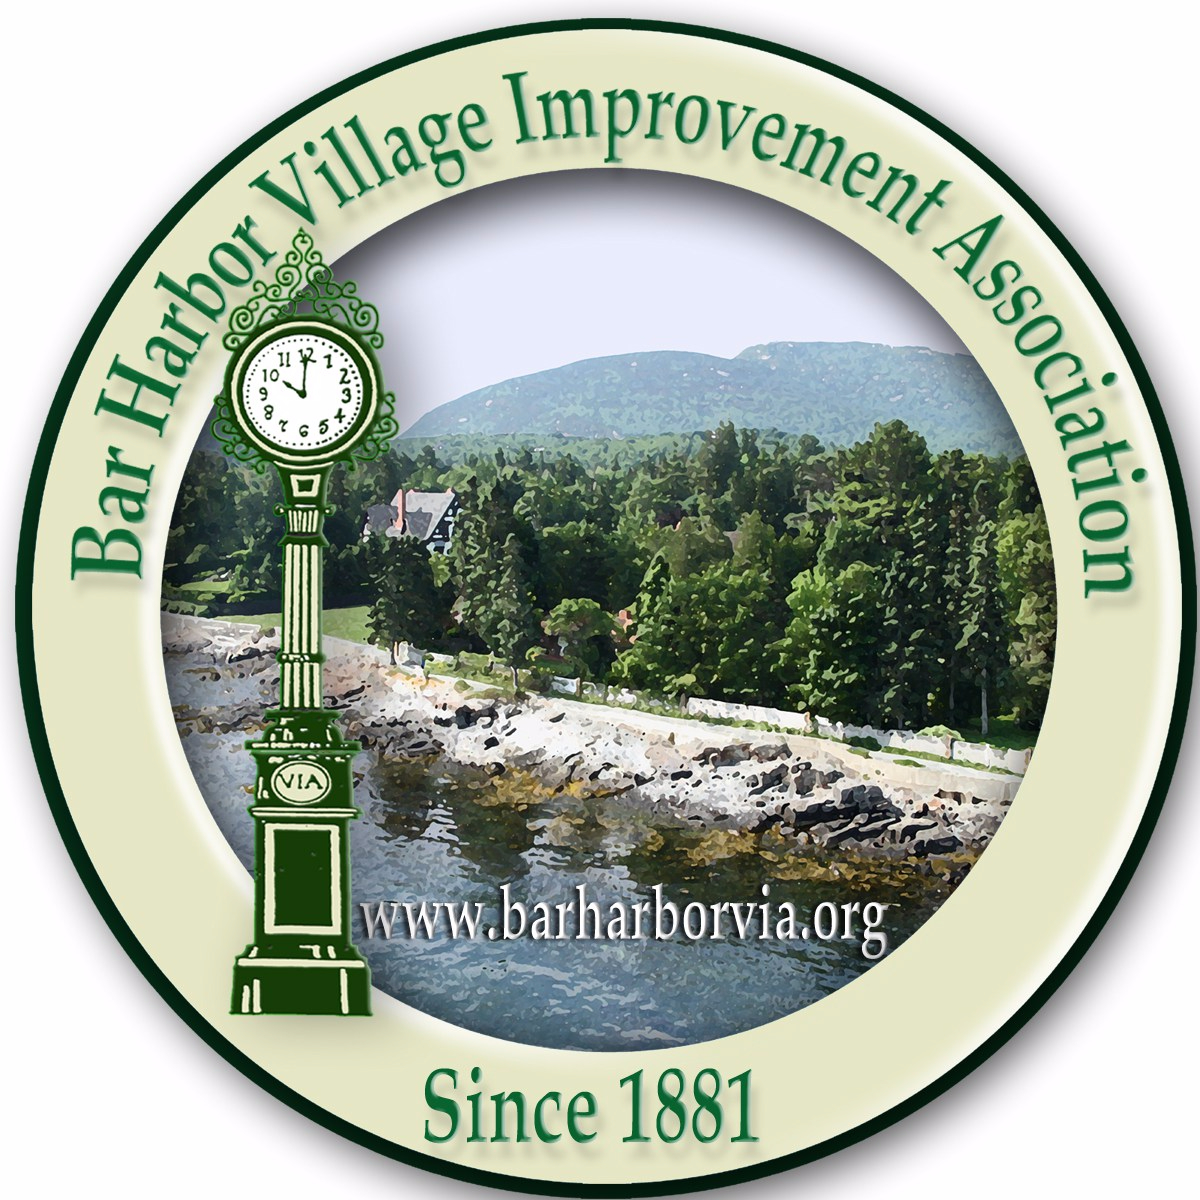 Bar Harbor Village Improvement Association